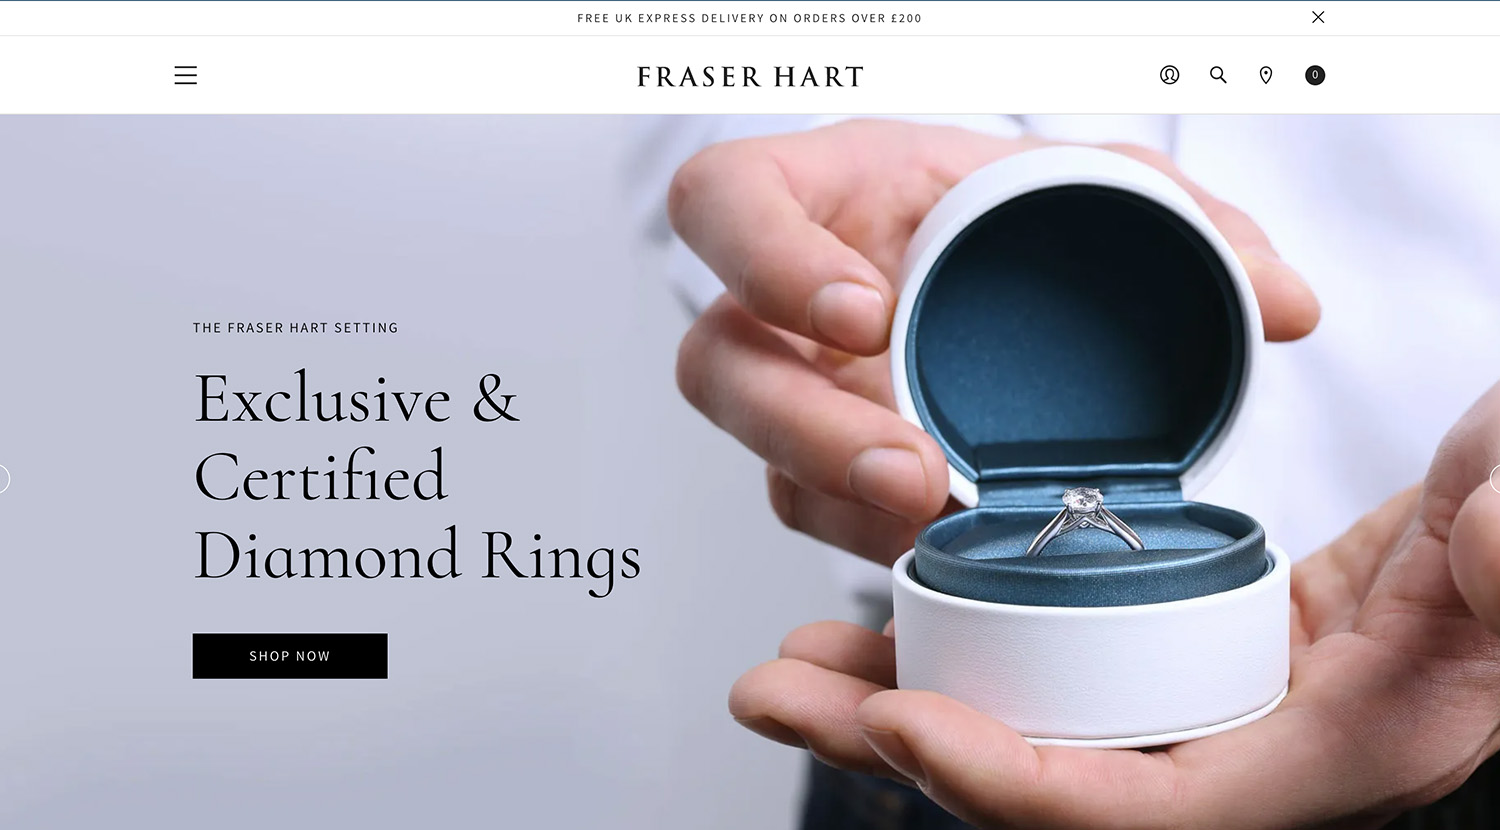 fraser_hart_jewellery_website.jpg